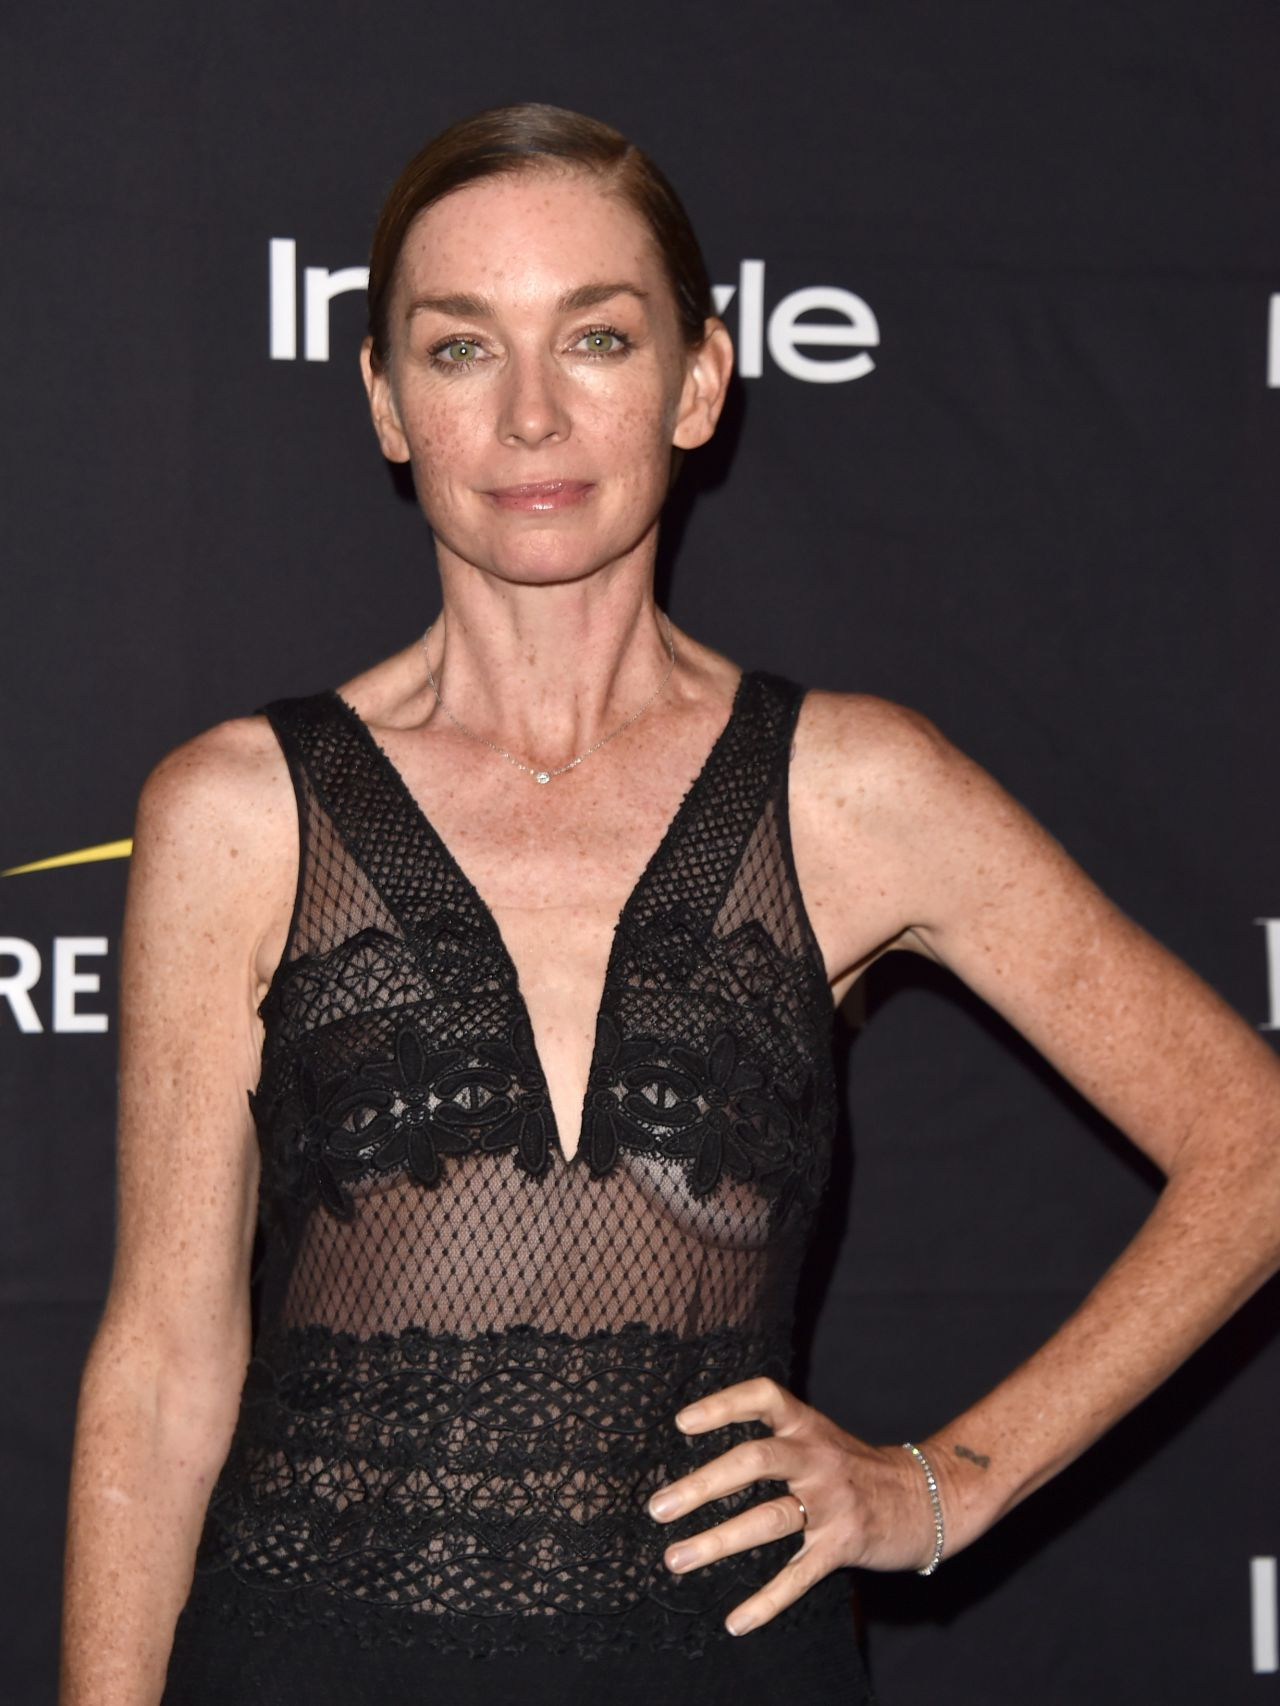 Julianne Nicholson Julianne Nicholson new images